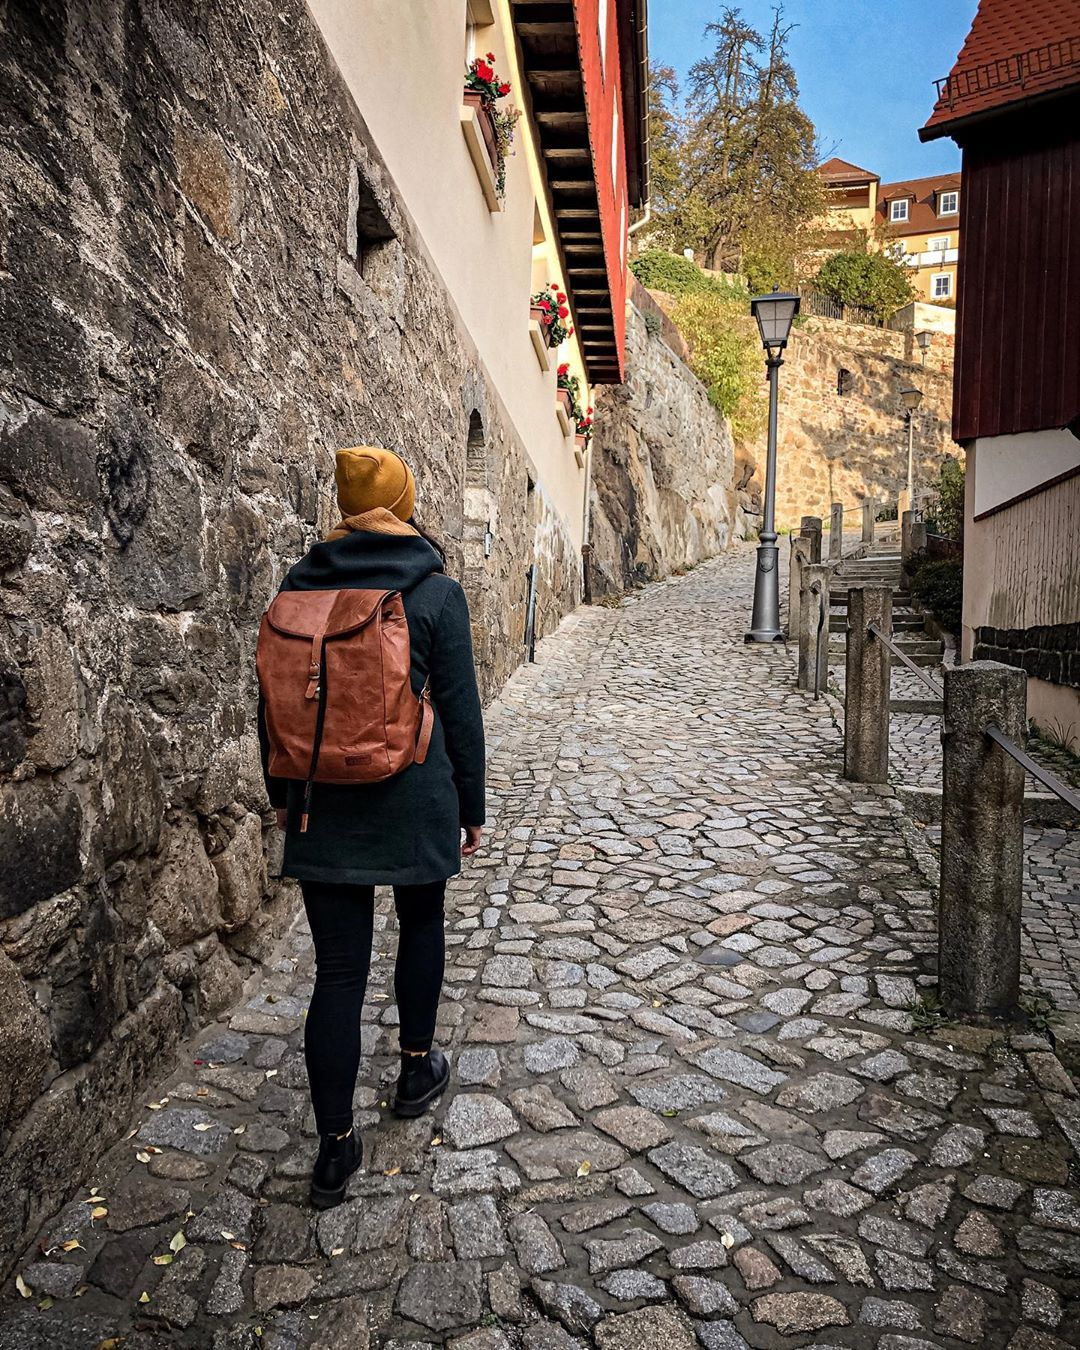 Berliner Bags Malaga Inspired Designed Locally In Berlin Each Bag Is Made For You With Love Passion Qual Fahrradrucksack Leder Tagesrucksack